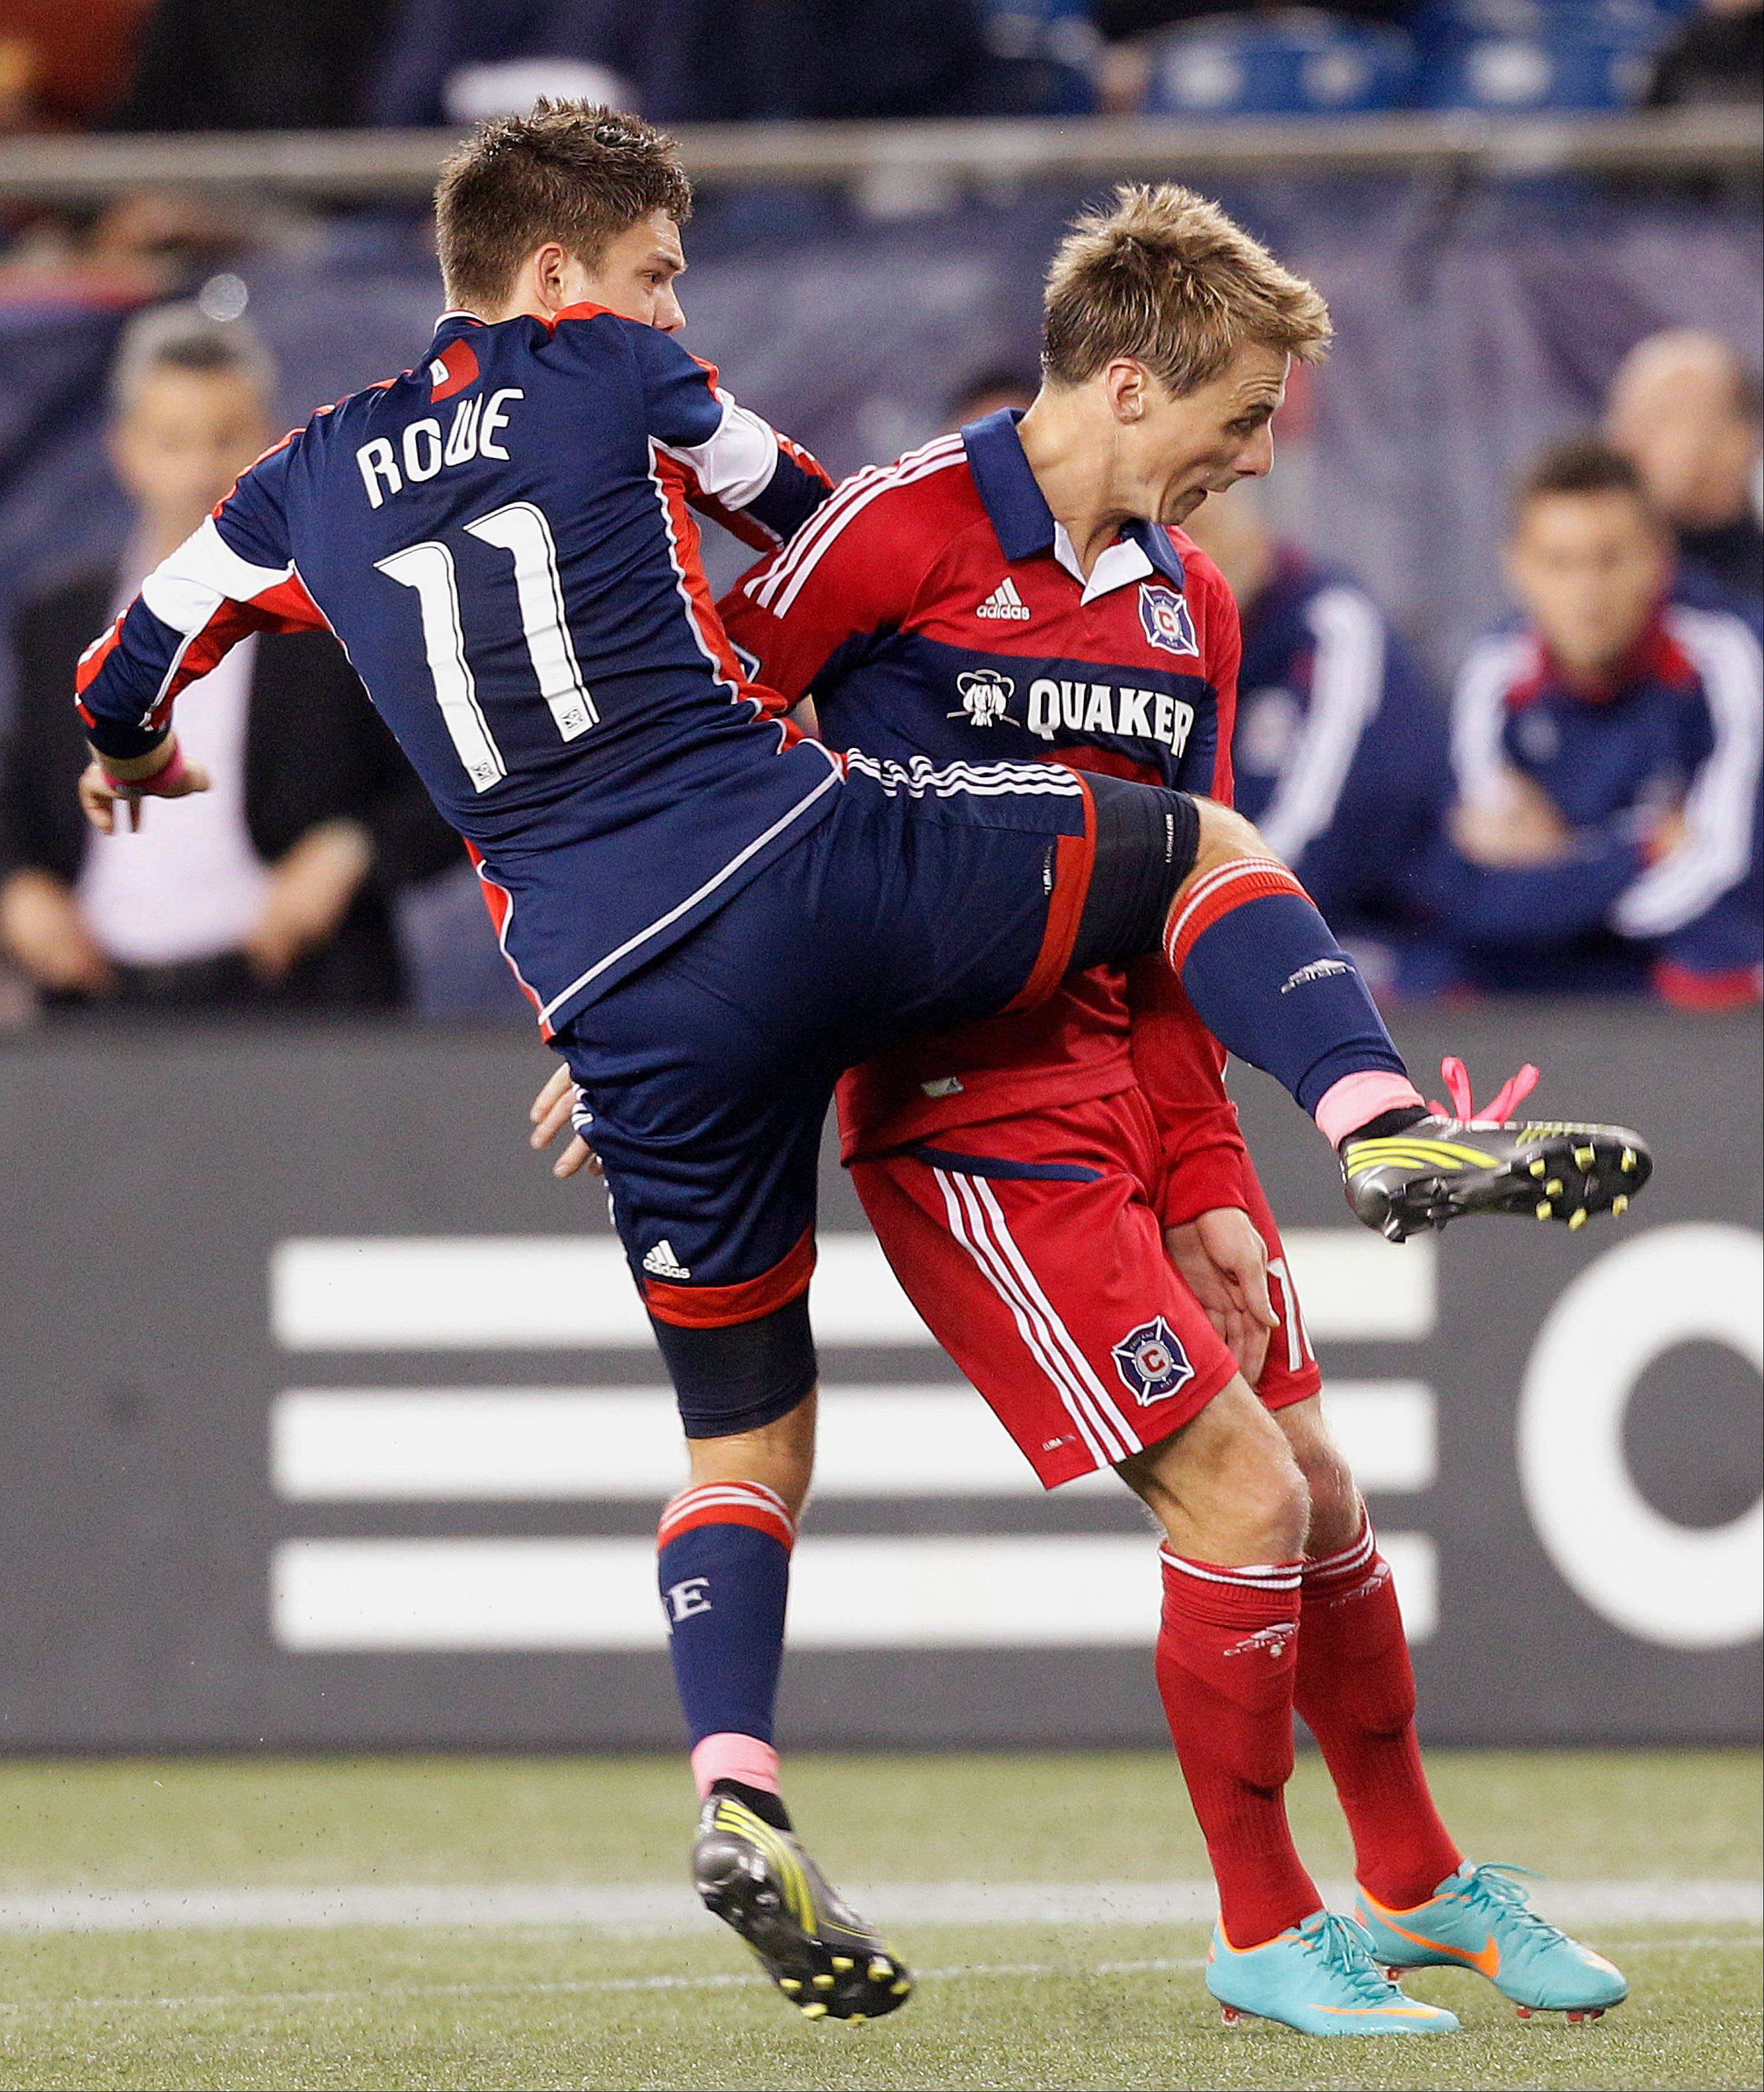 New England Revolution midfielder Kelyn Rowe (11) knees Chicago Fire forward Chris Rolfe during their MLS soccer match in Foxborough, Mass., Saturday, Oct. 20, 2012. The Revolution won 1-0.